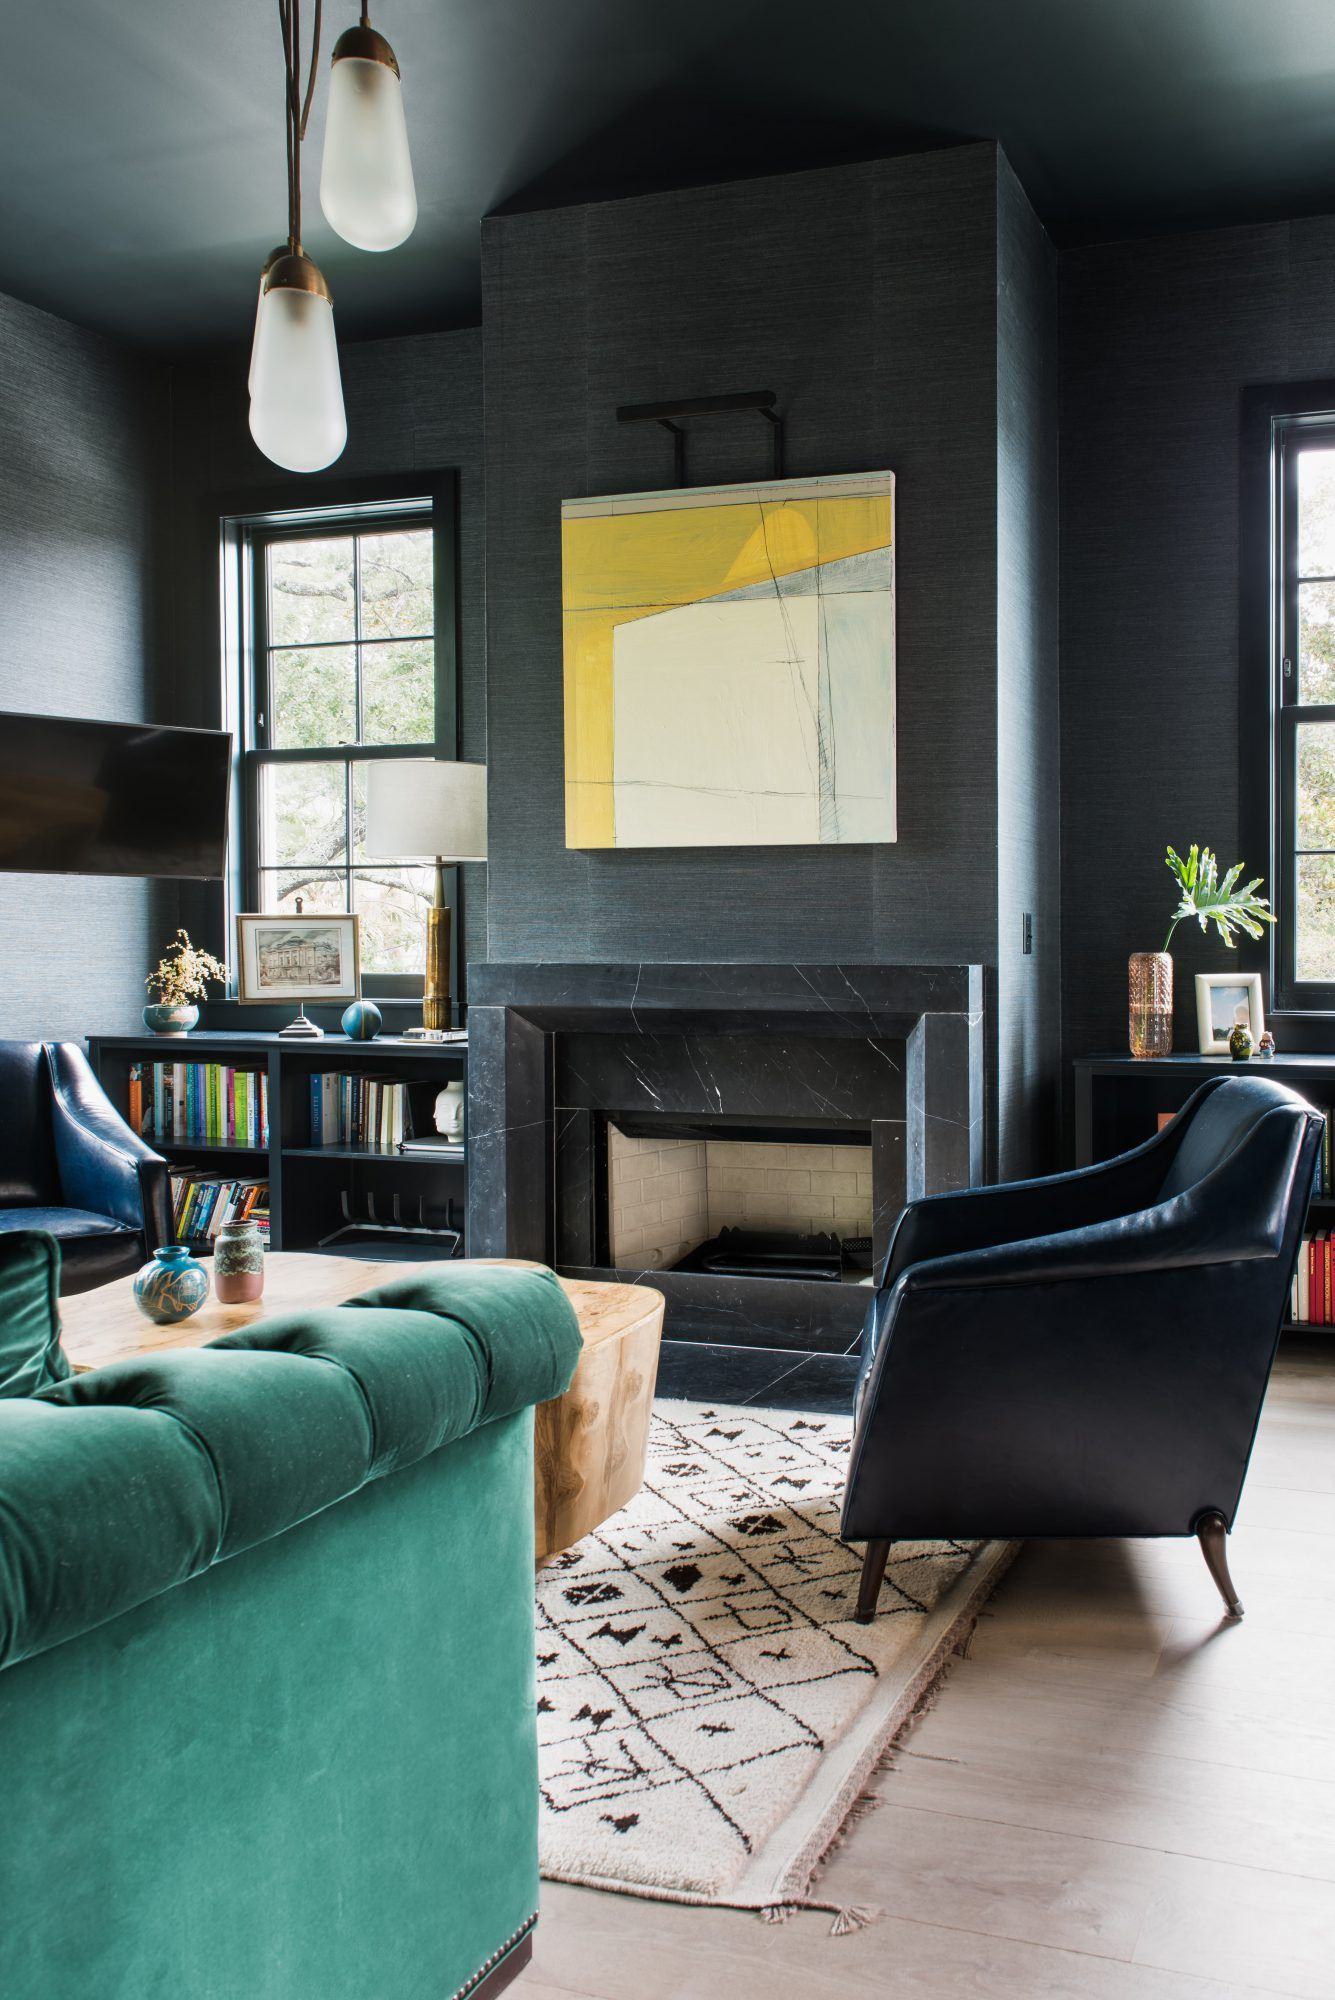 Best Interior Design Of Living Room: Moody Living Room Space With Pops Of Color. Design By